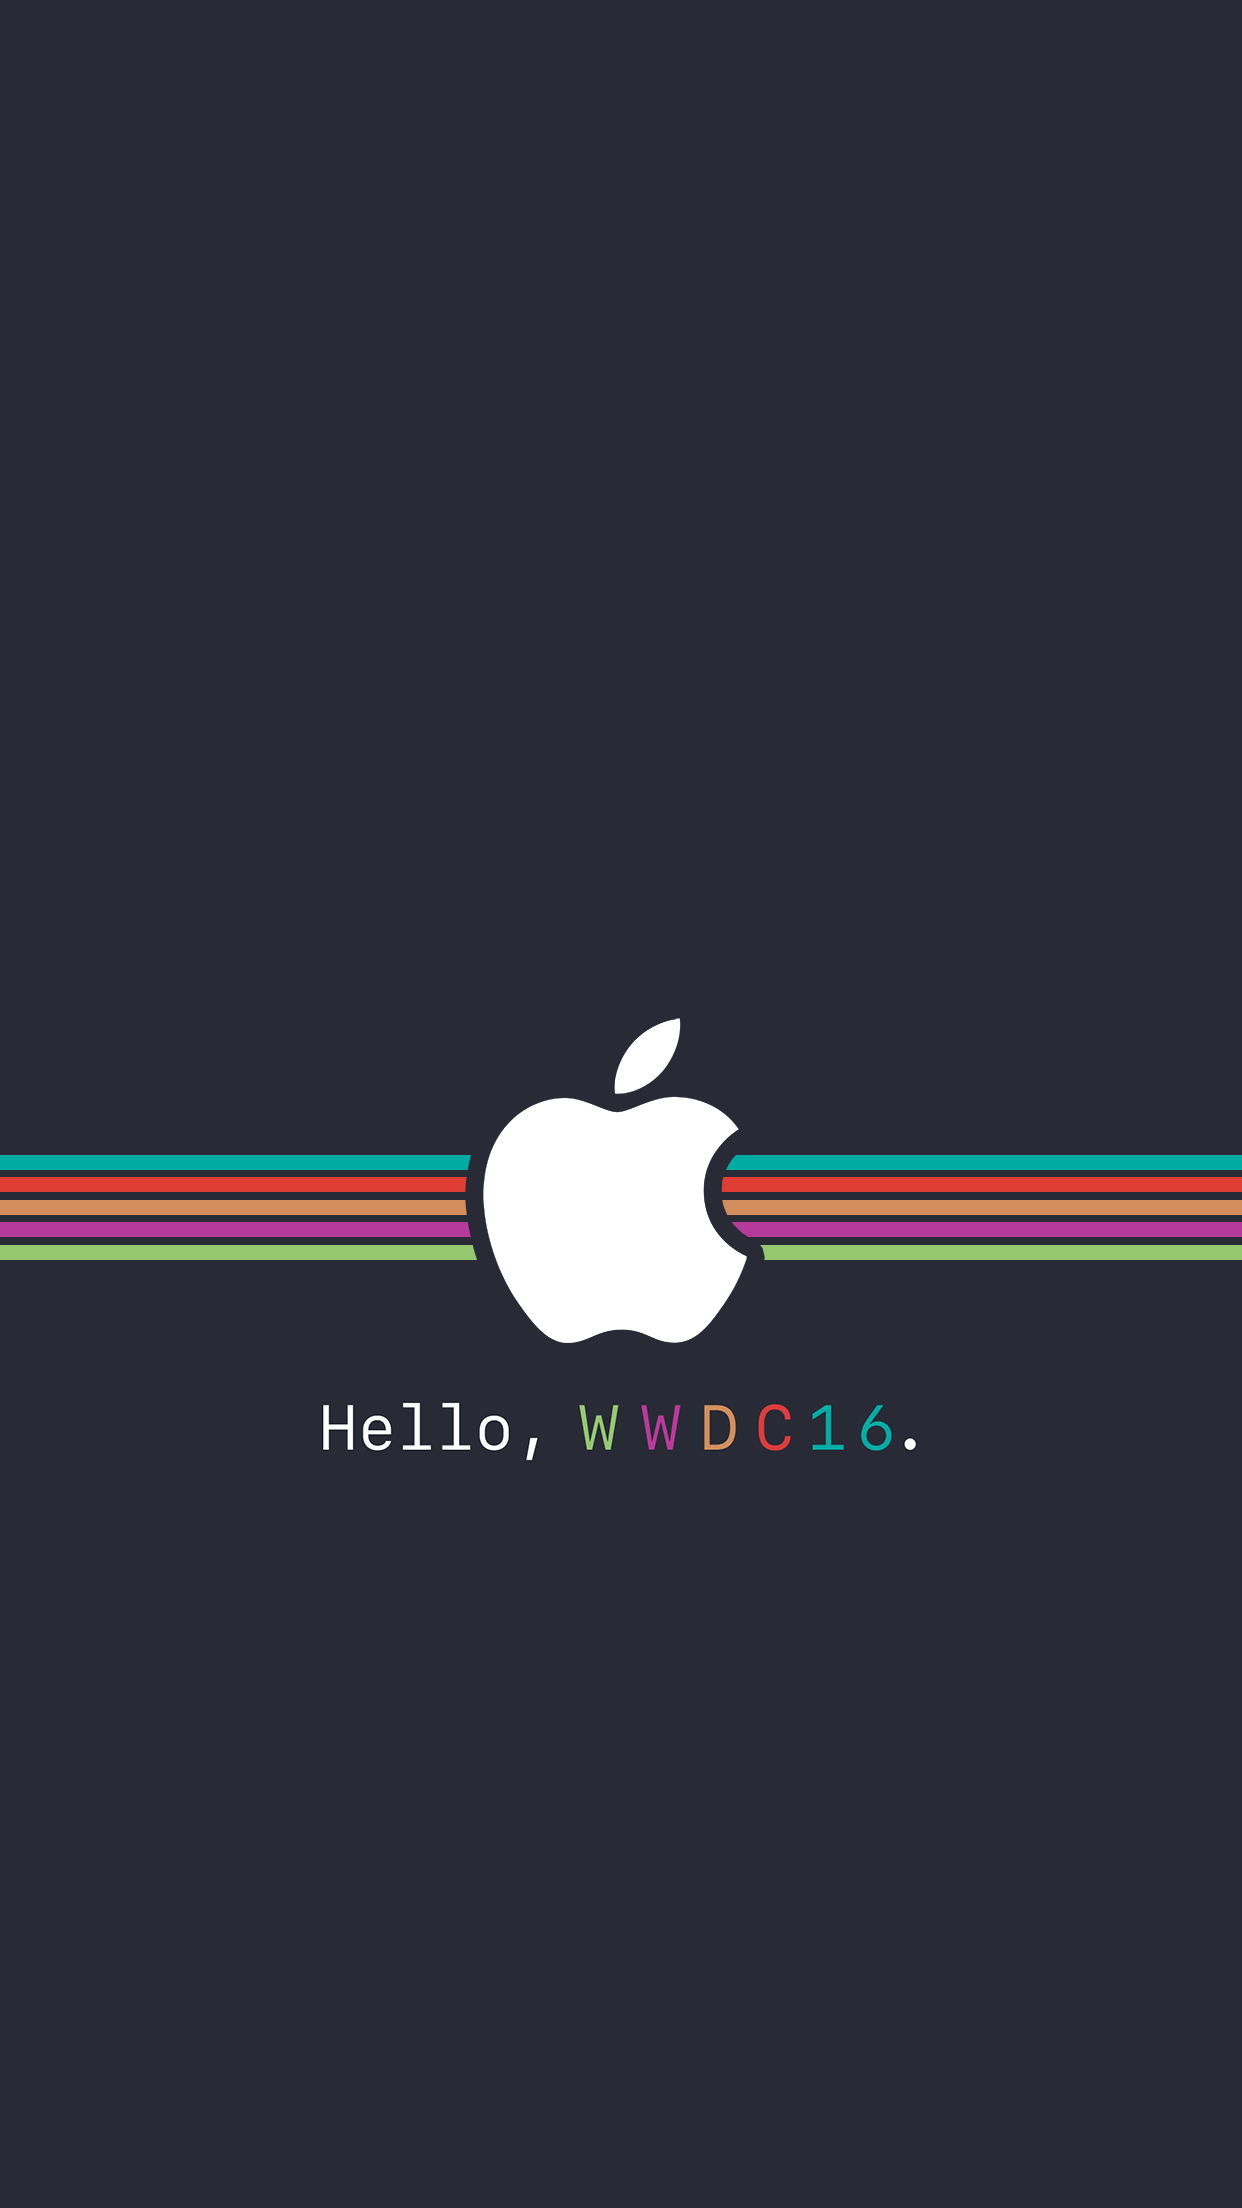 Simple Quotes Hd Wallpapers Fonds D 233 Cran Wwdc 2016 Pour Iphone Ipad Apple Watch Et